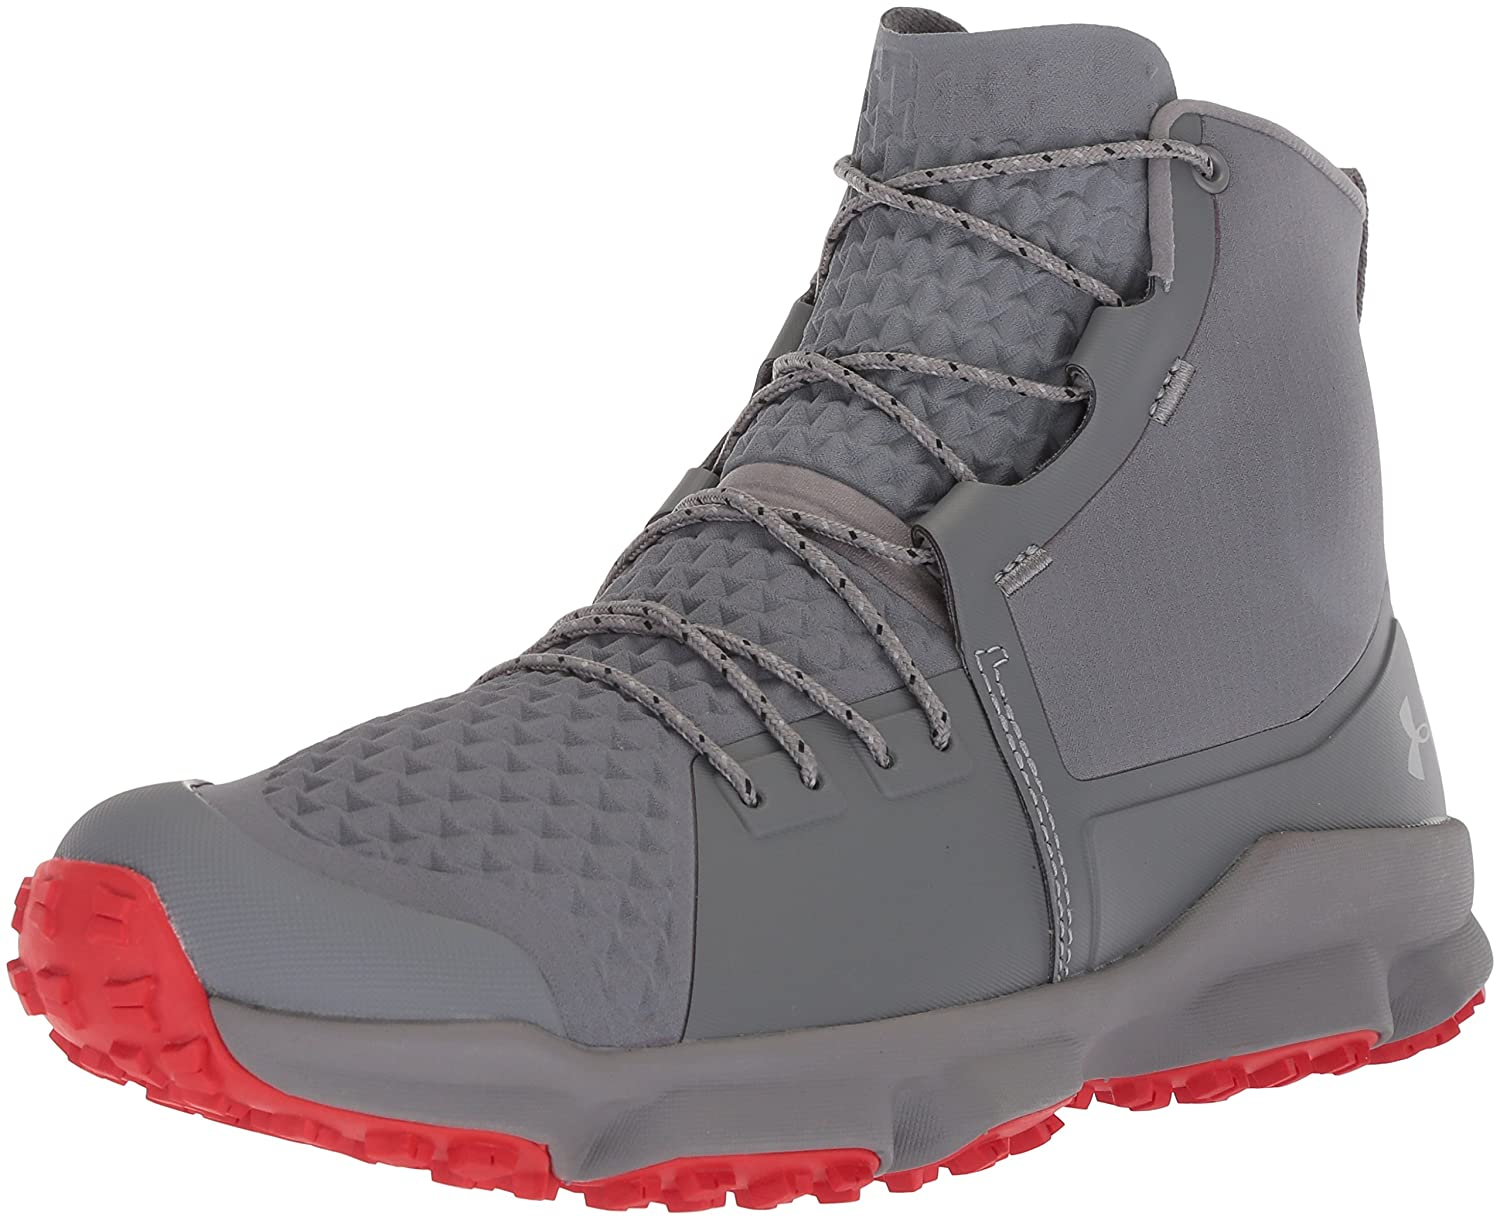 ff0625cac77 Under Armour Men's Speedfit 2.0 Hiking Shoe